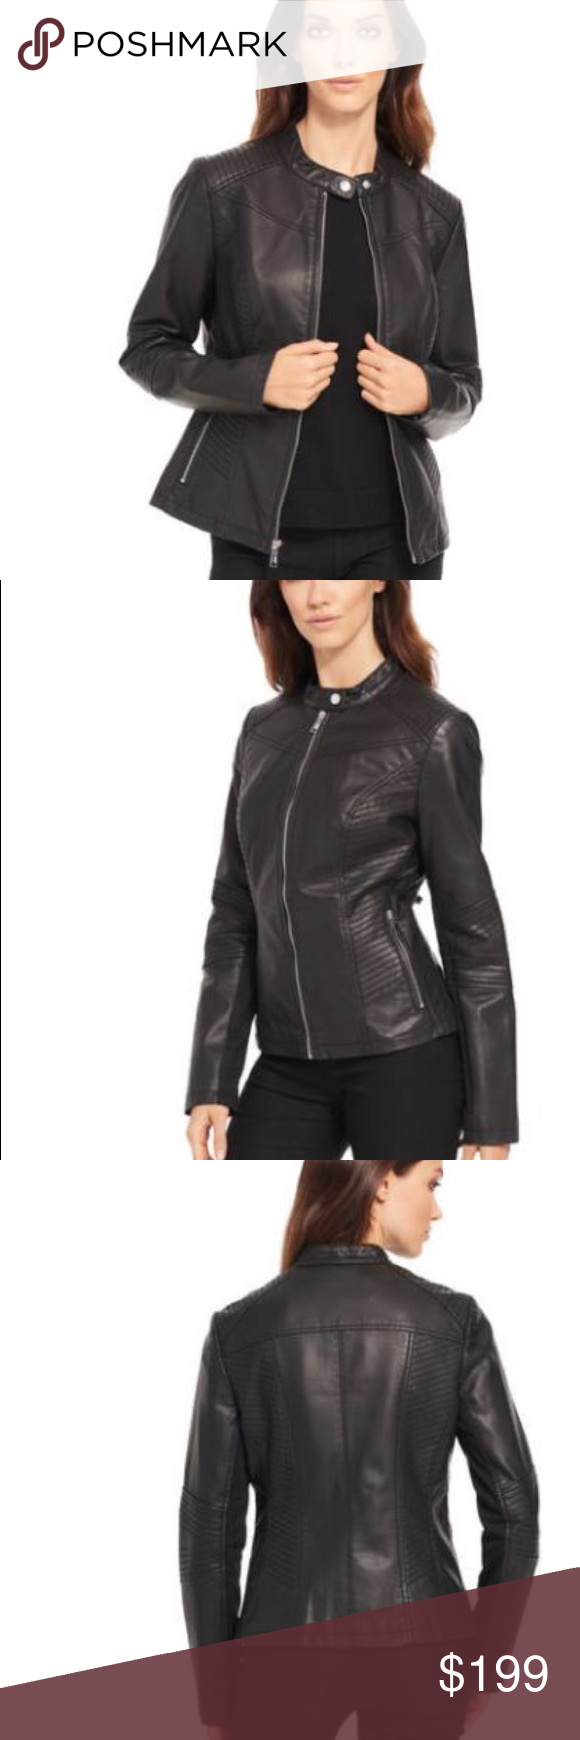 442d13ac4e7 PLUS SIZE Black Rivet Moto Faux-Leather Jacket. 1X Rock an edgy look in  this faux-leather jacket from Black Rivet  tons of seams and a mock collar  create ...